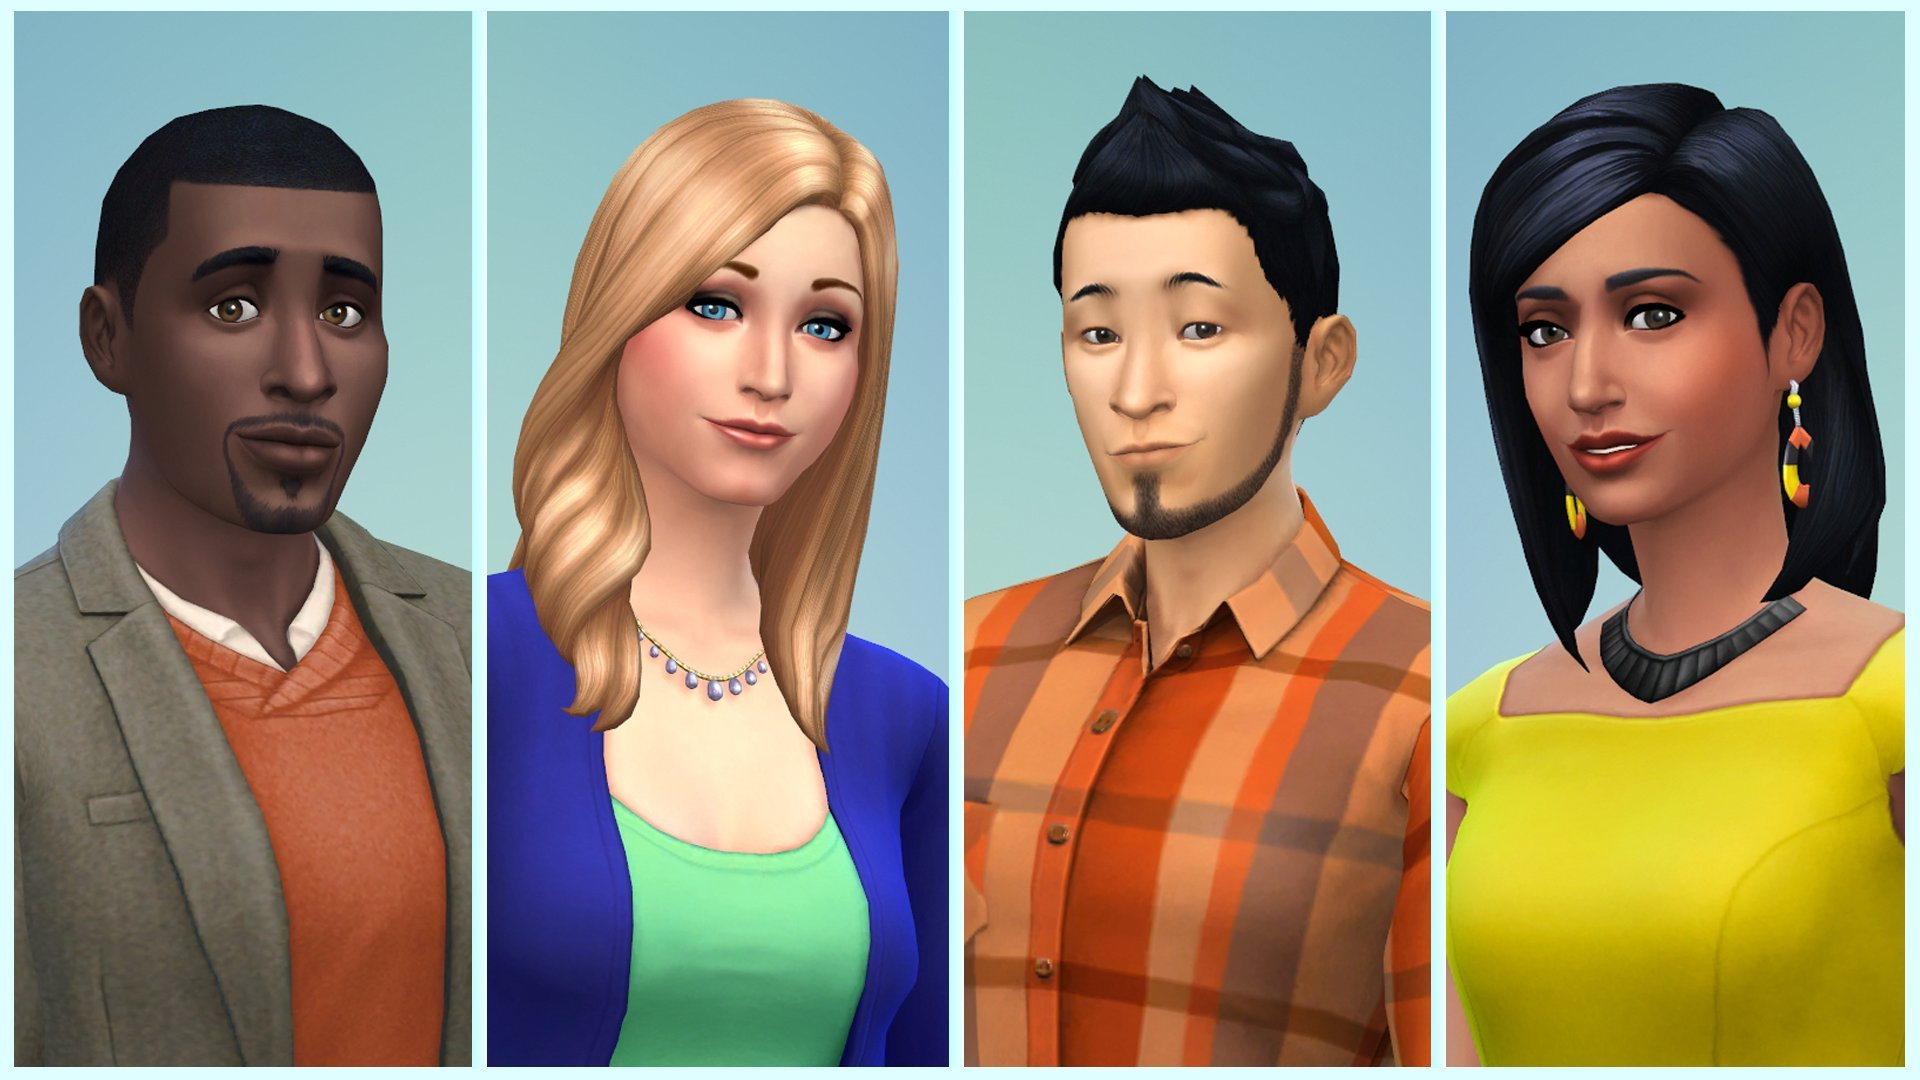 The Sims 4 [Online Game Code] by Electronic Arts (Image #6)